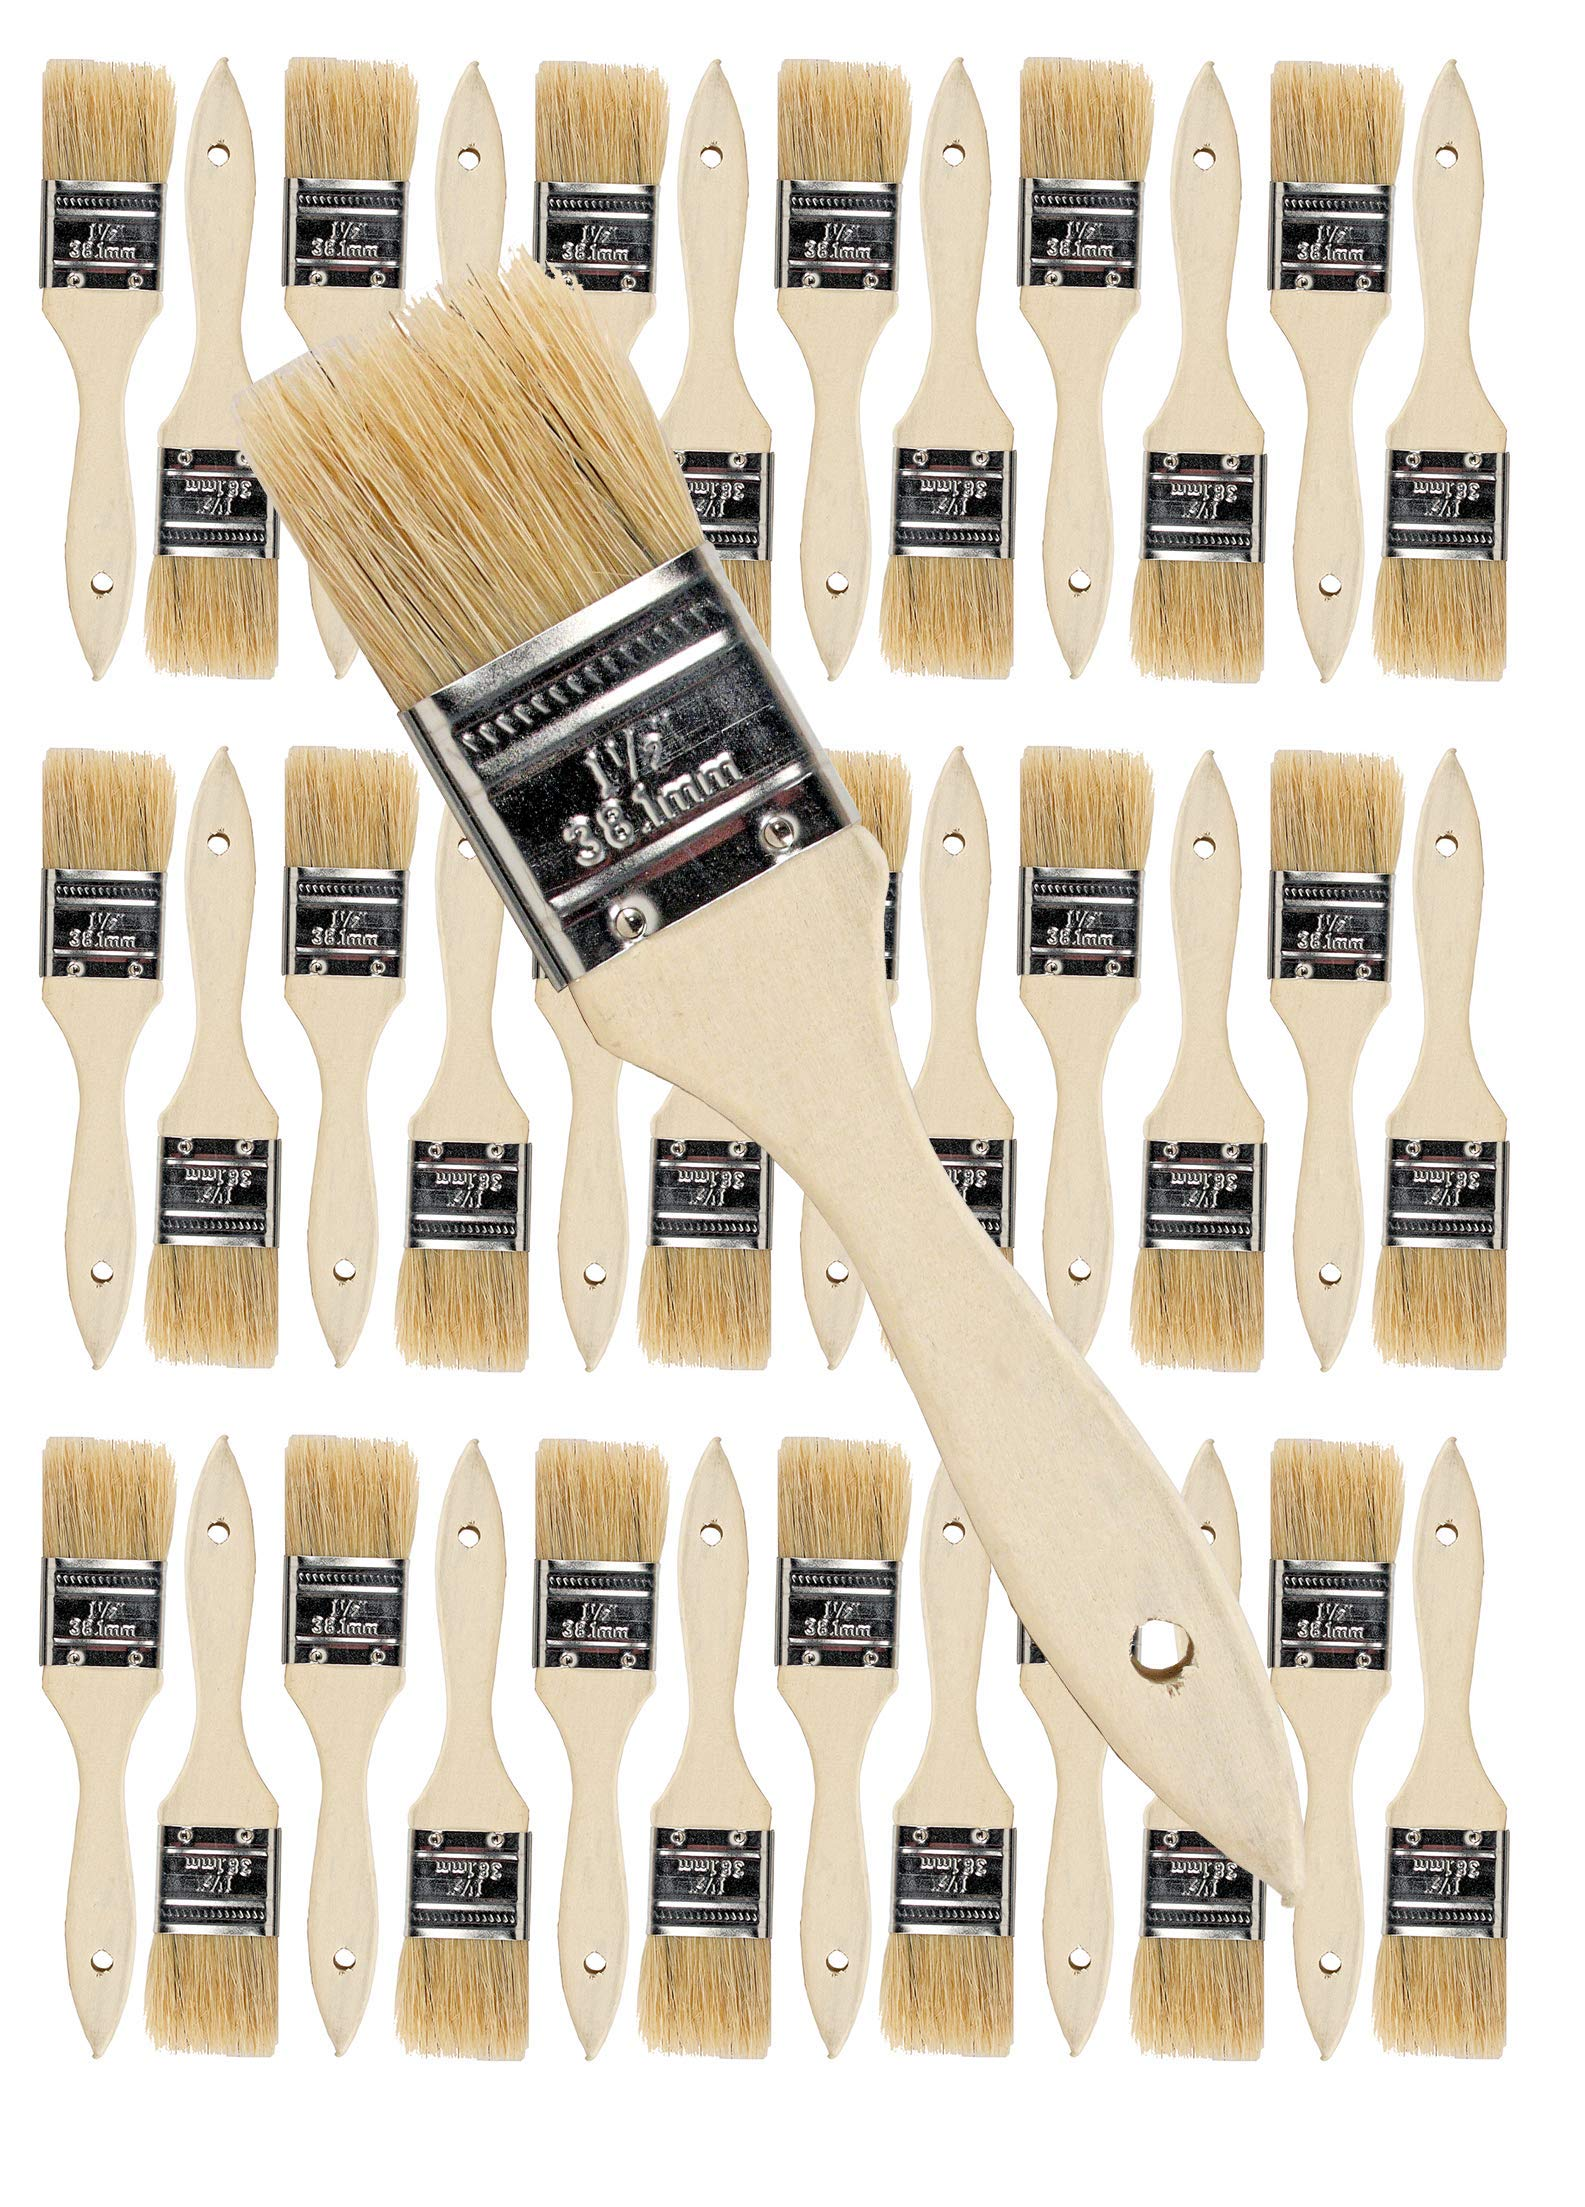 Pro Grade - Chip Paint Brushes - 36 Ea 1.5 Inch Chip Paint Brush by PRO